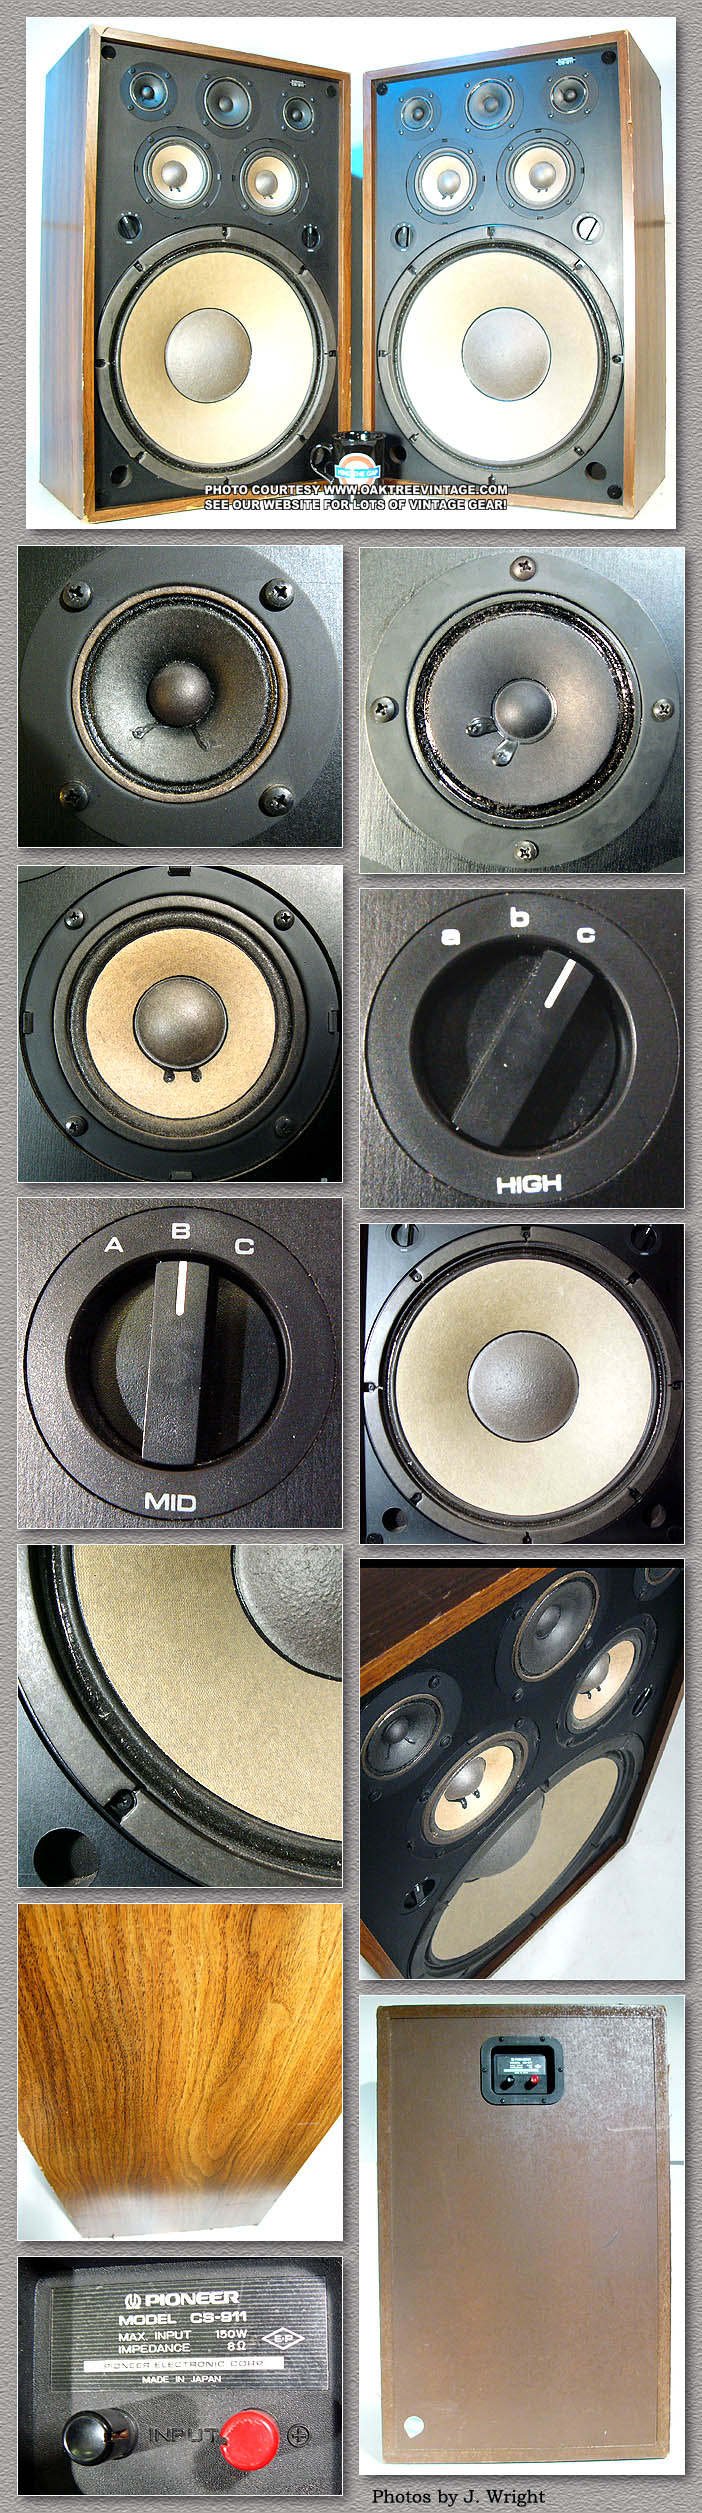 archive vintage classic pioneer speakers photo gallery